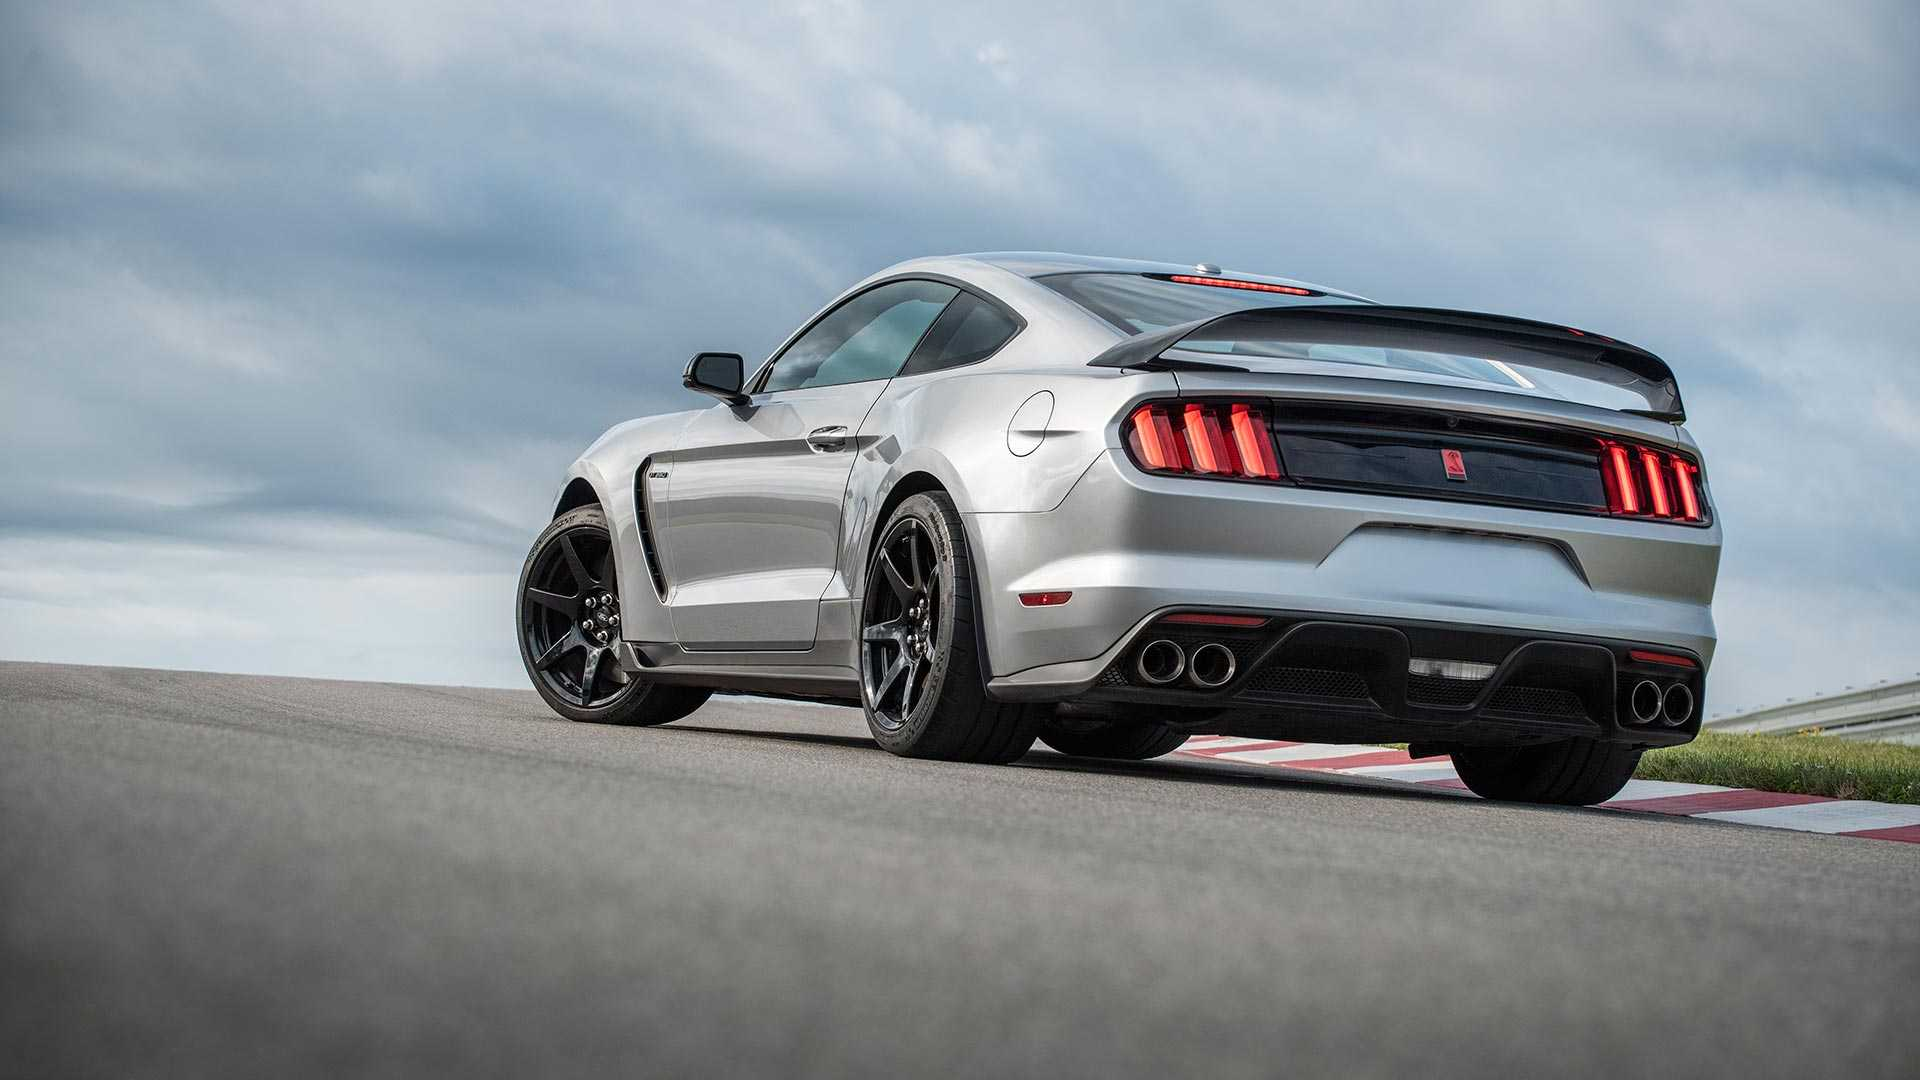 2020 Ford Mustang Shelby GT350R Rear Three-Quarter Wallpapers (6)